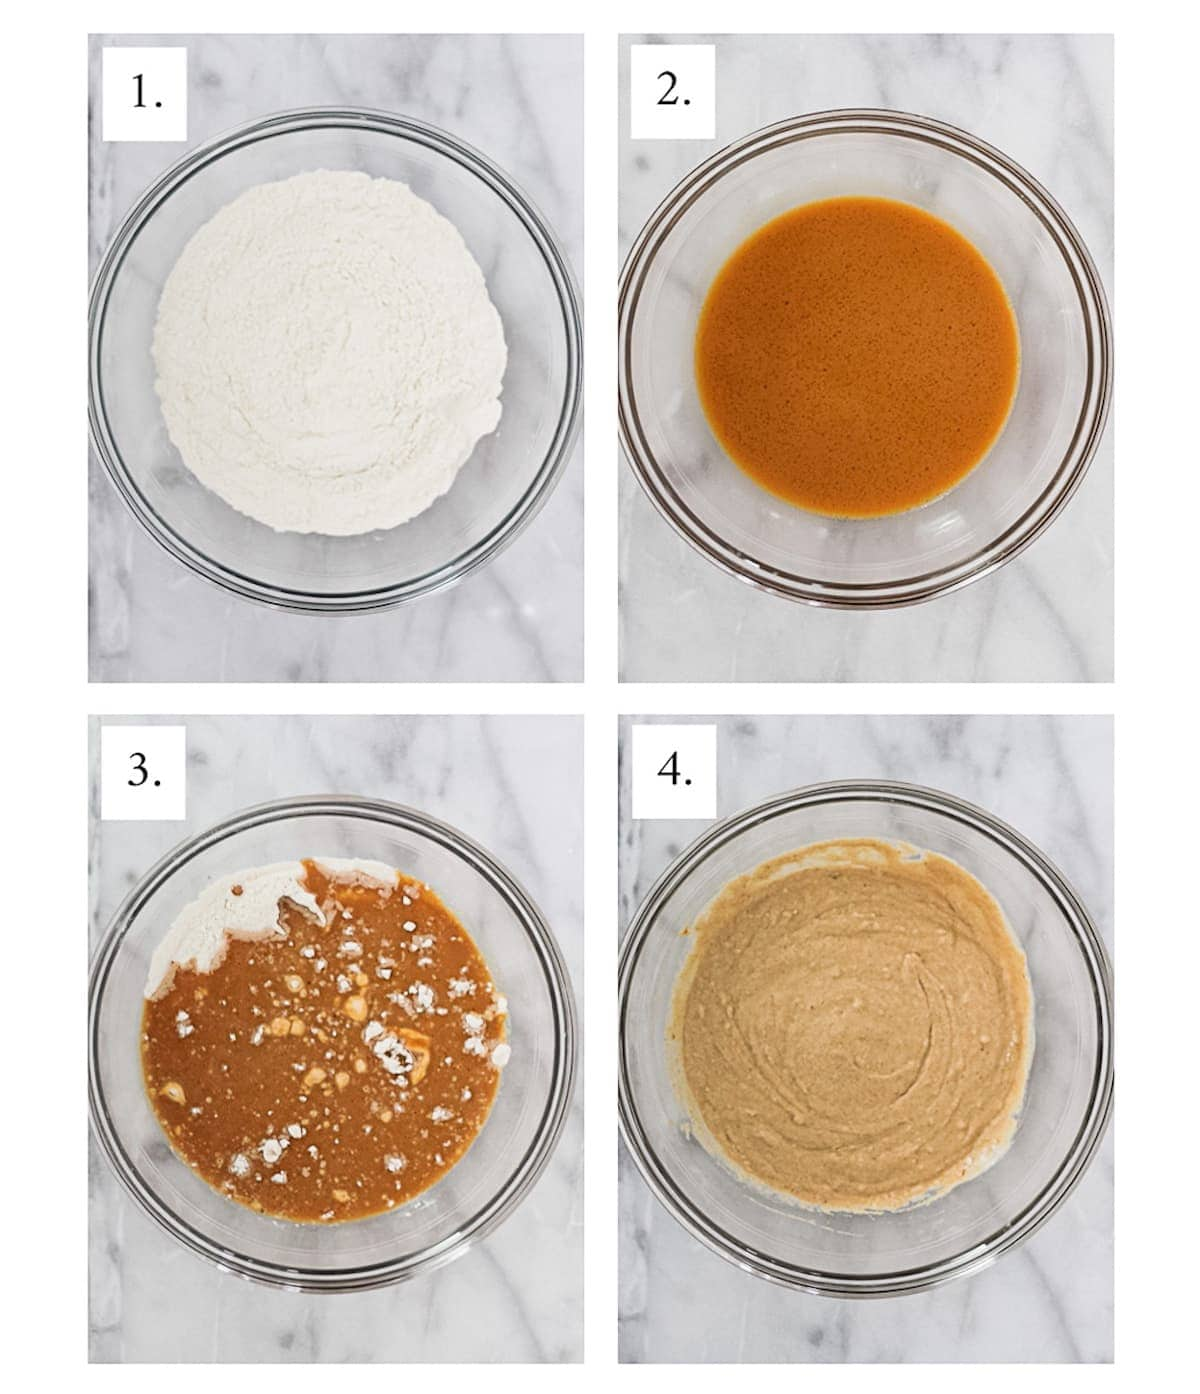 Step by step process pictures of making pumpkin pancakes. Picture 1 is the dry ingredients in a clear bowl, 2 is the wet ingredients in a clear bowl, 3 is the combined ingredients in a clear bowl, and 4 is everything well mixed in a clear bowl.